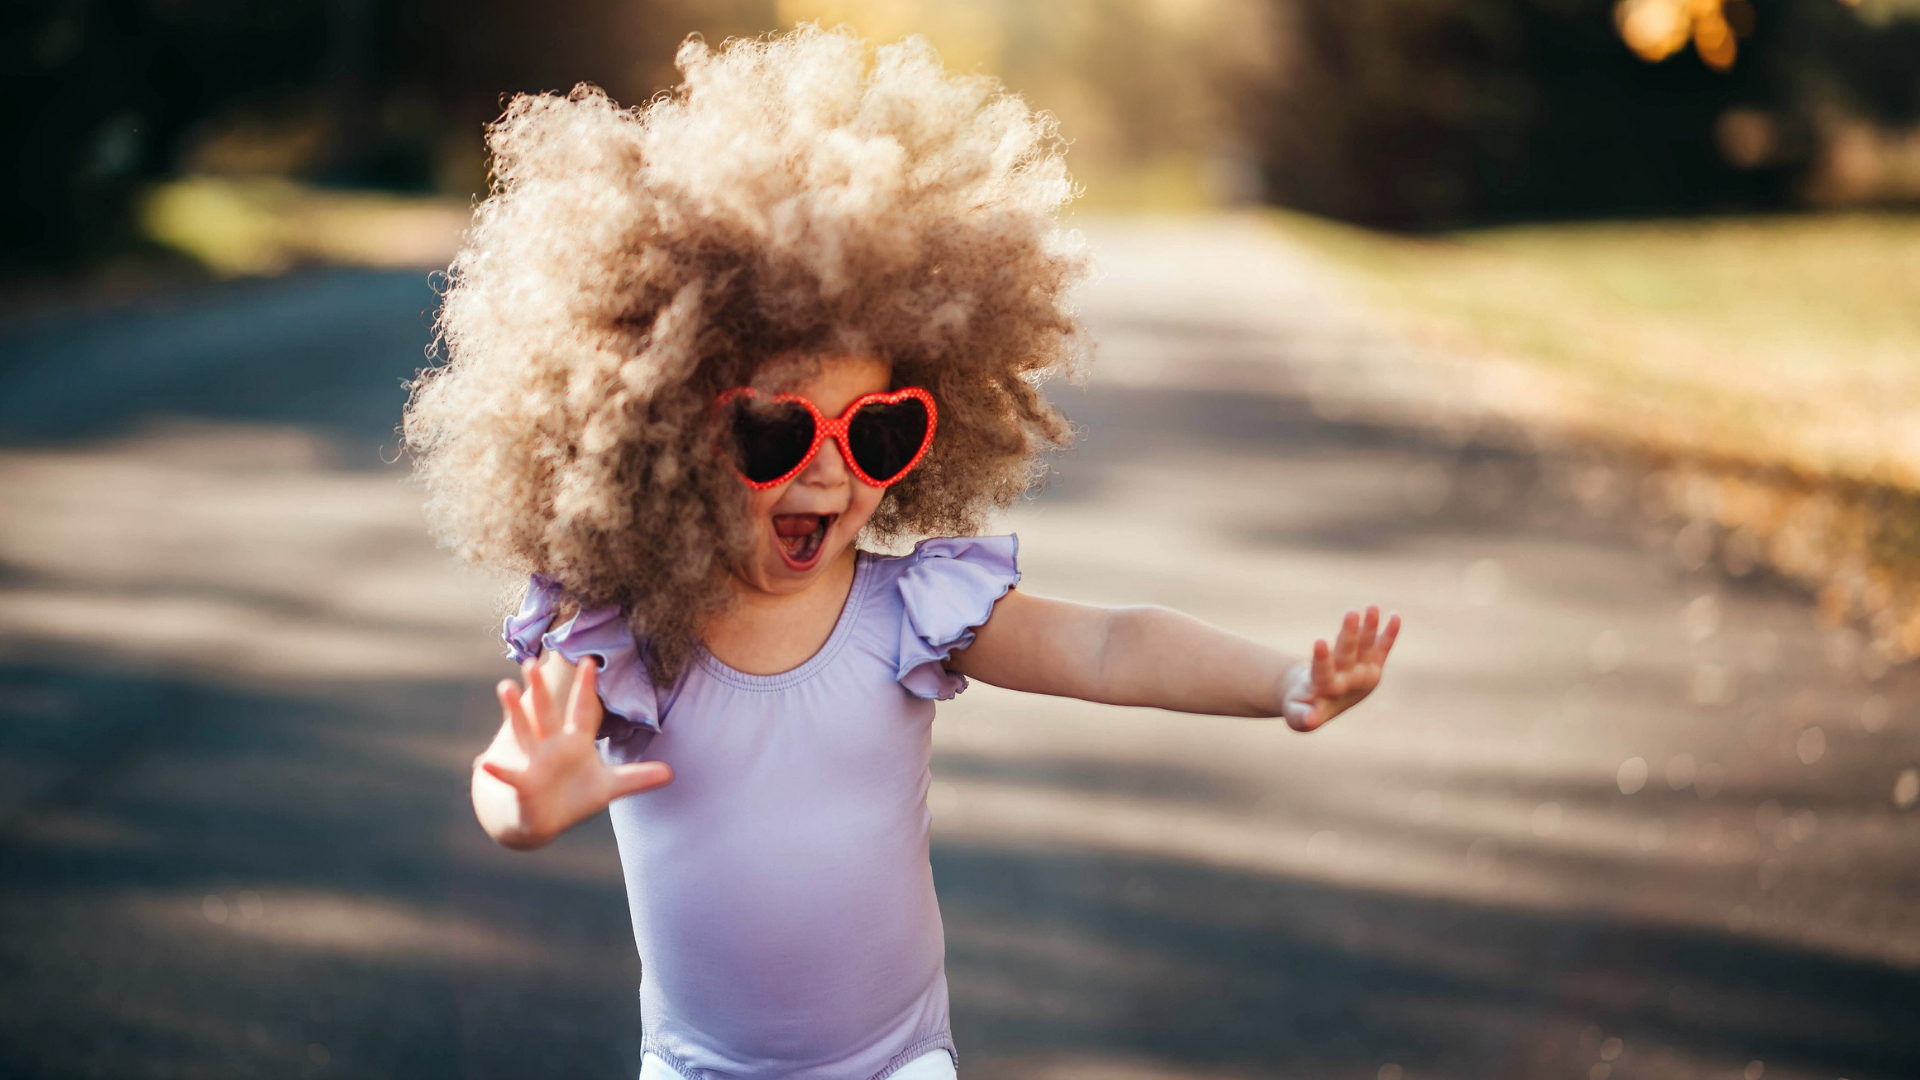 little-girl-wearing-wig-and-sunglasses